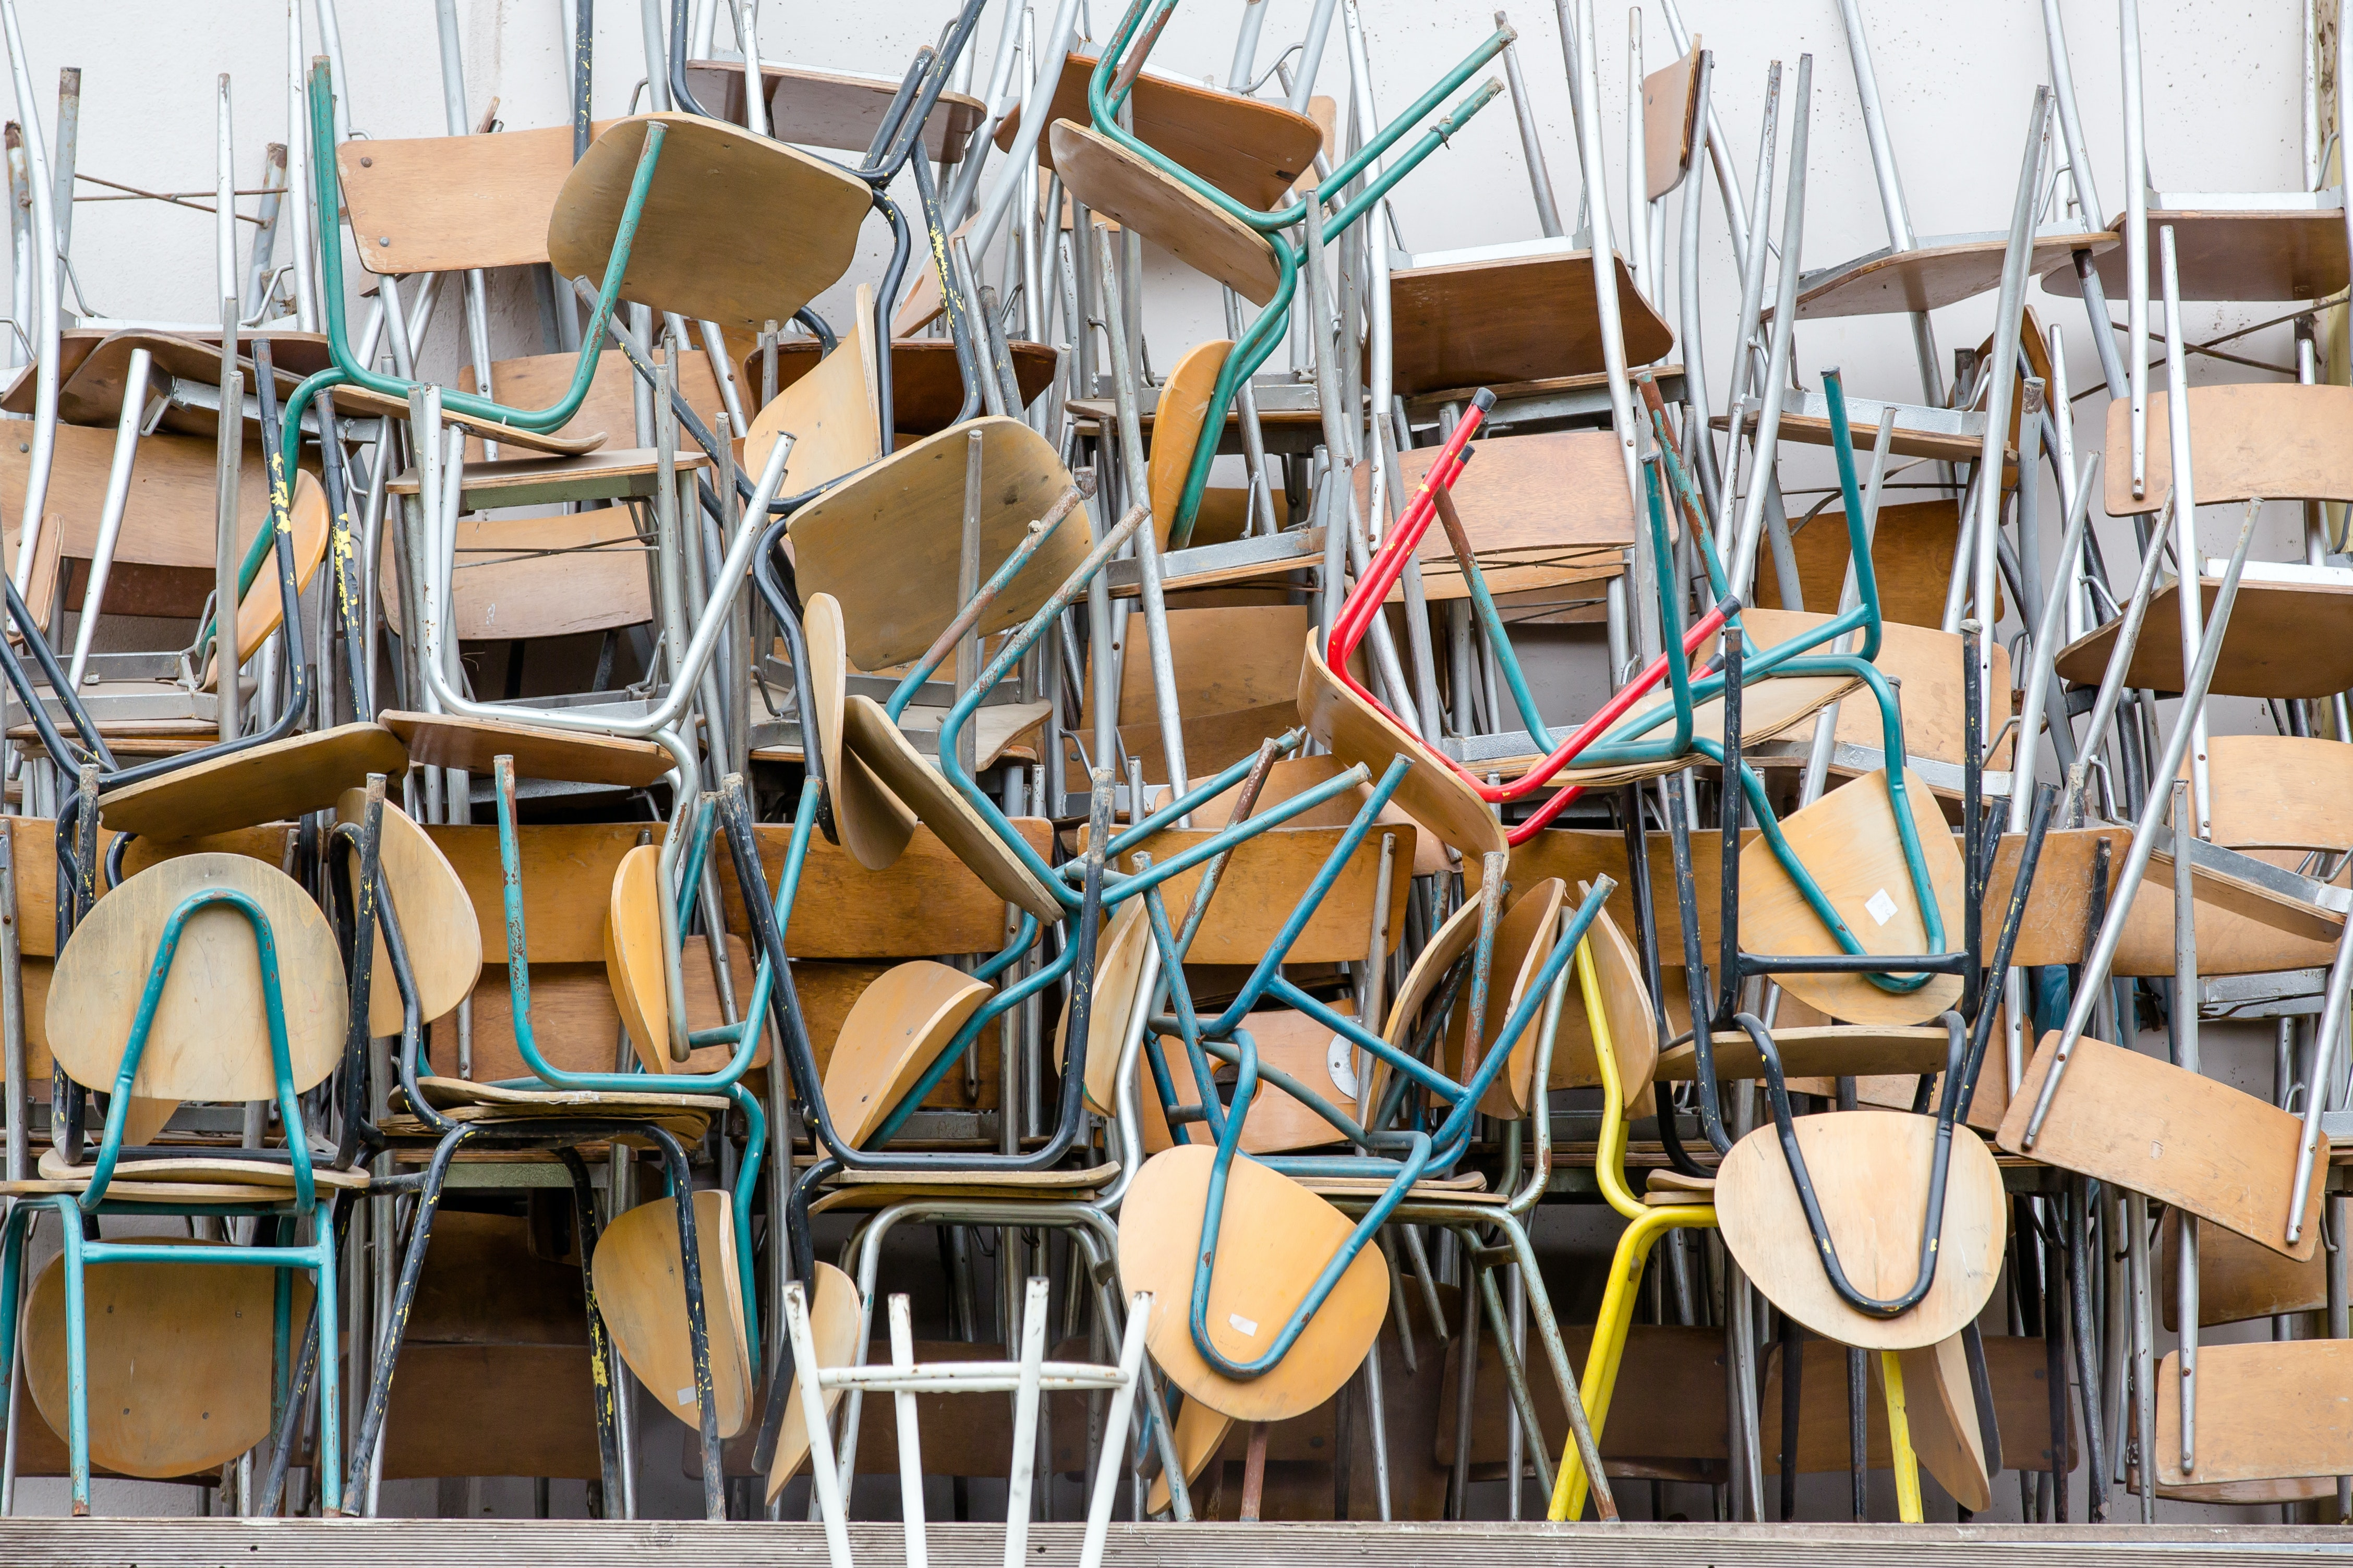 Anthropocene: why the chair should be the symbol for our sedentary age